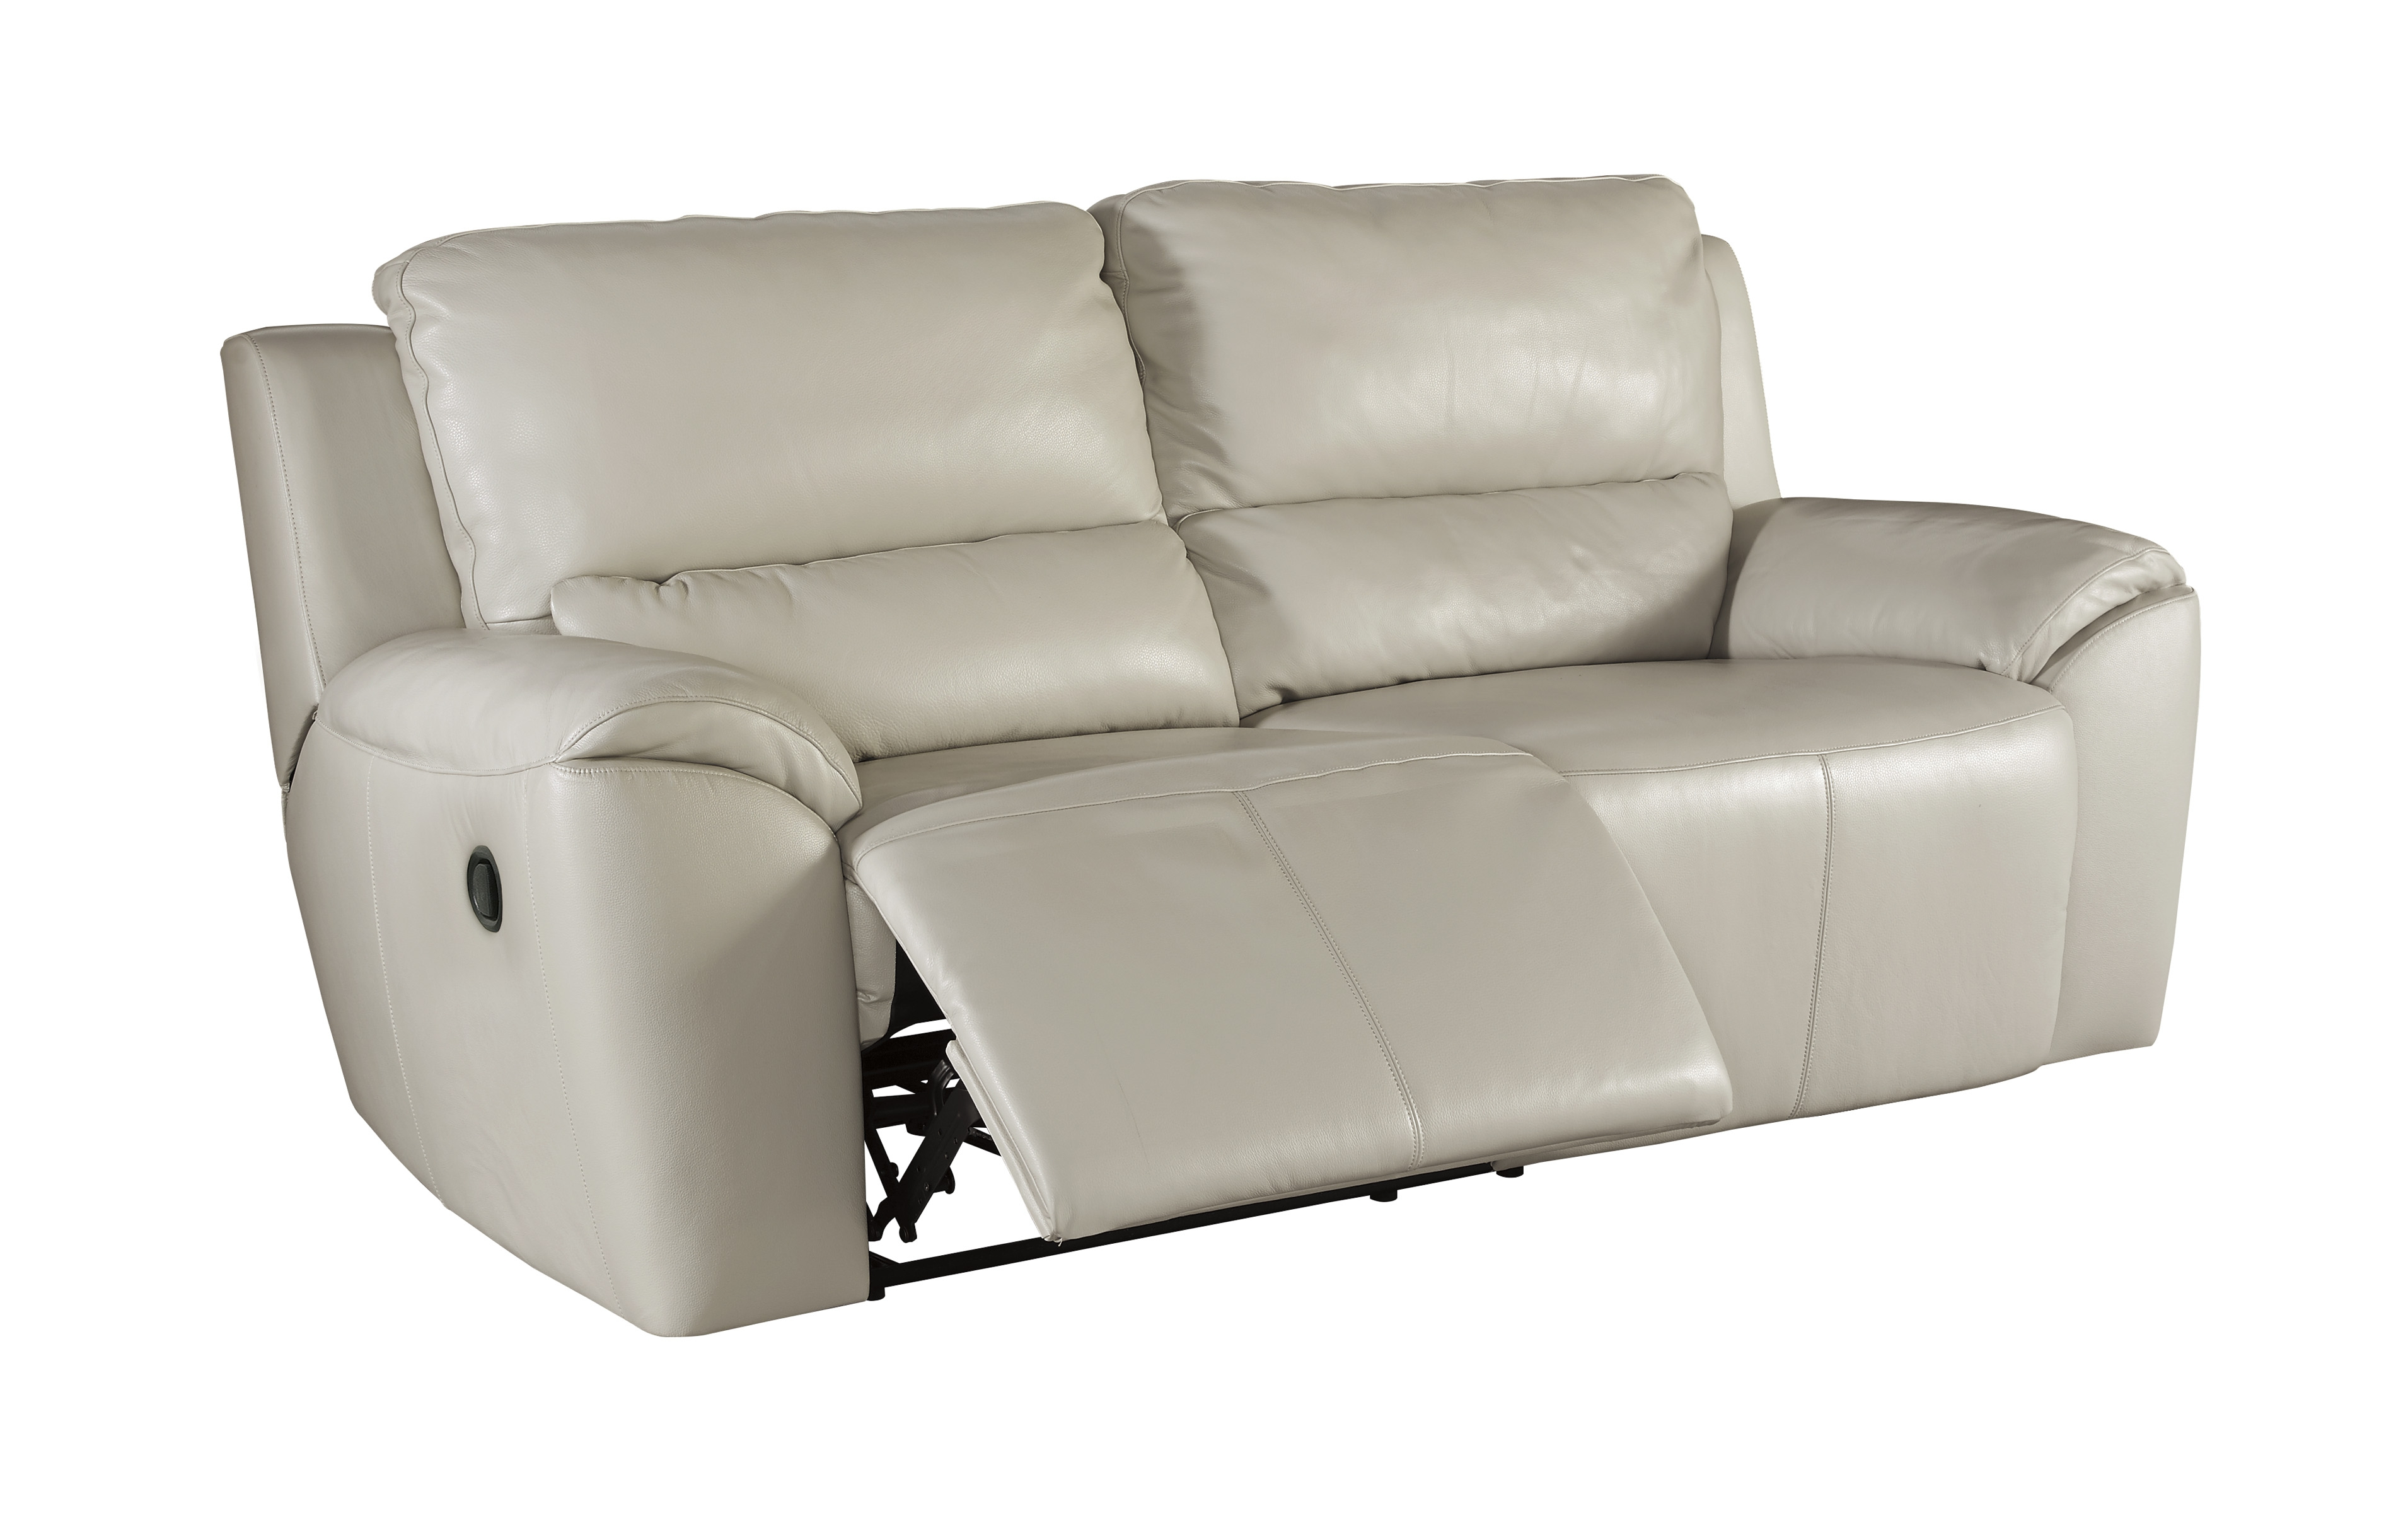 Ashley Furniture Valeton Cream 2 Seat Reclining Sofa The Classy Home